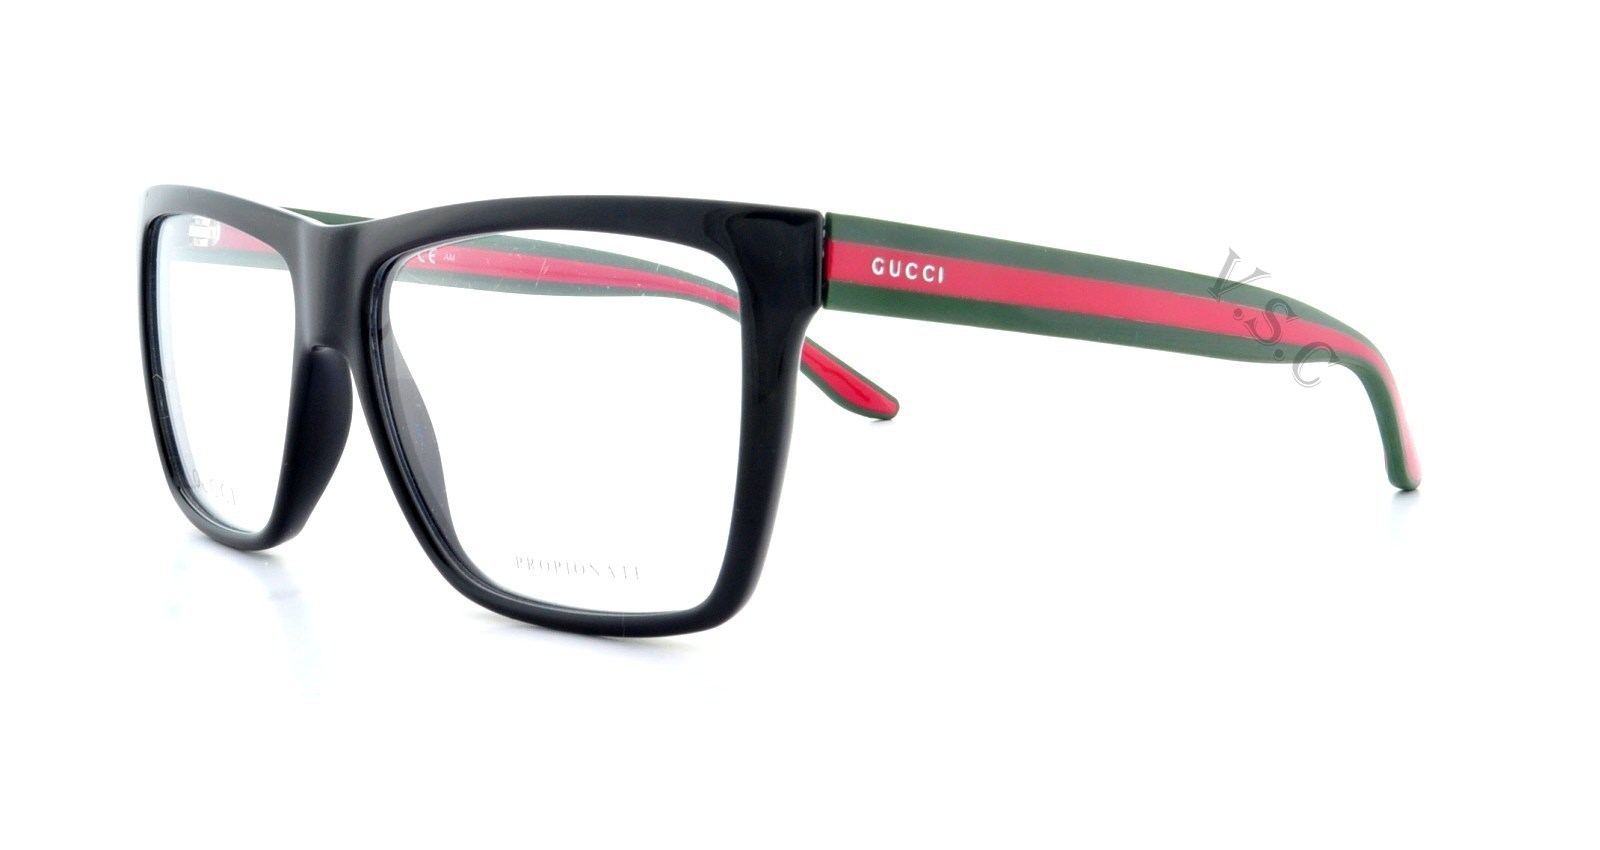 GUCCI 1008 EYEGLASSES GG EYE GLASSES 51N SHINY BLACK - RED ...